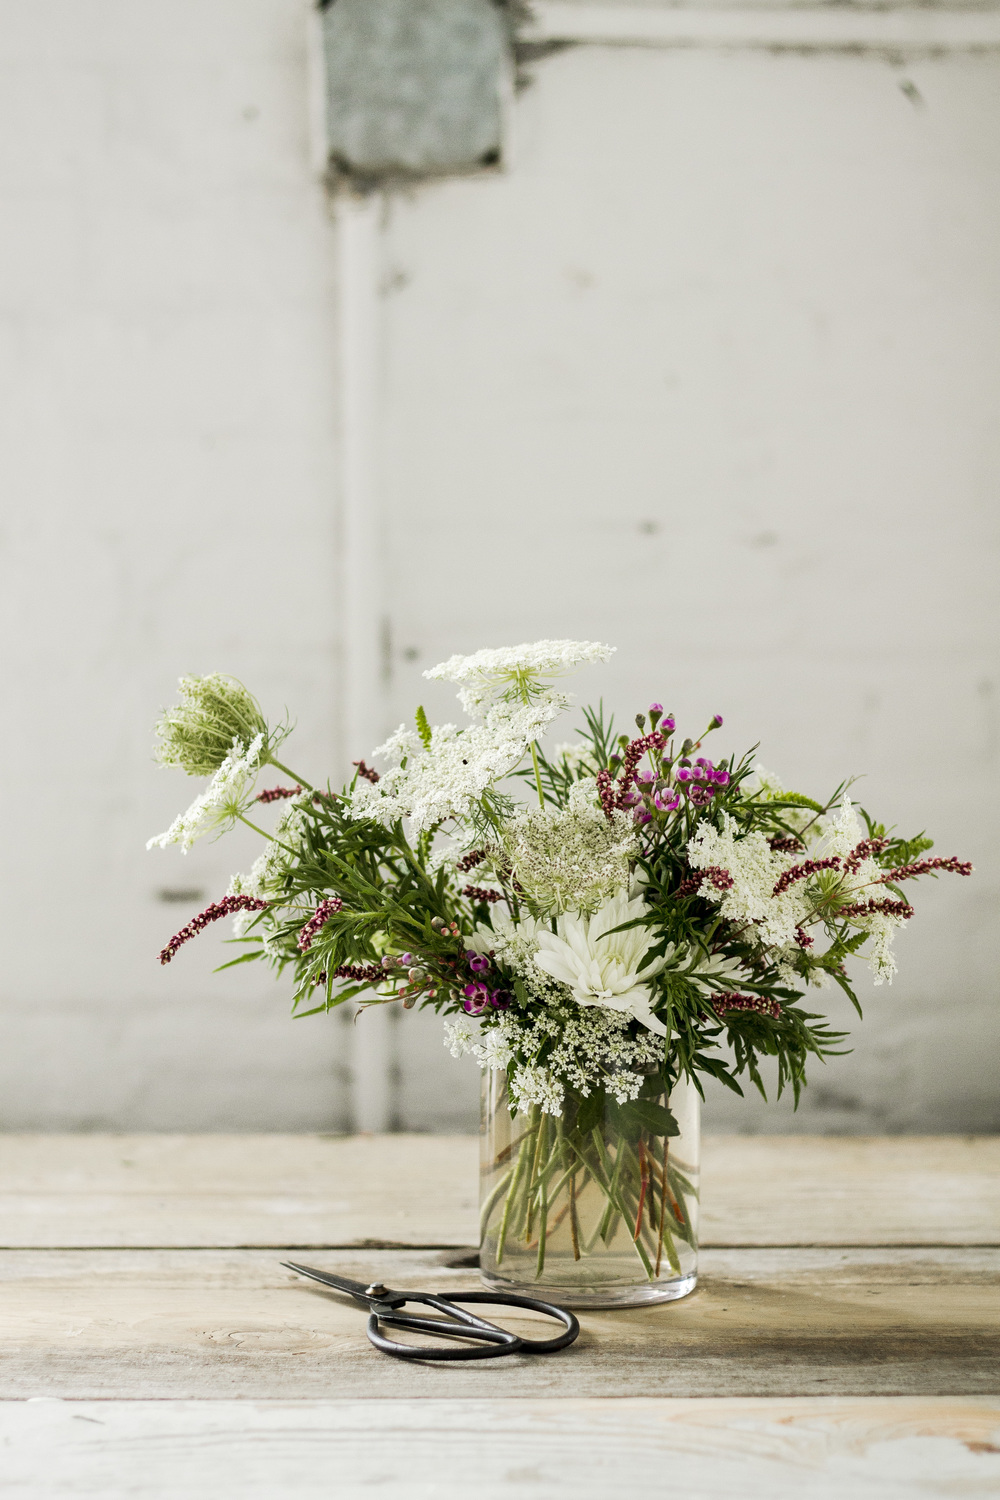 5 tips to keep flowers fresher longer | via: bekuh b.